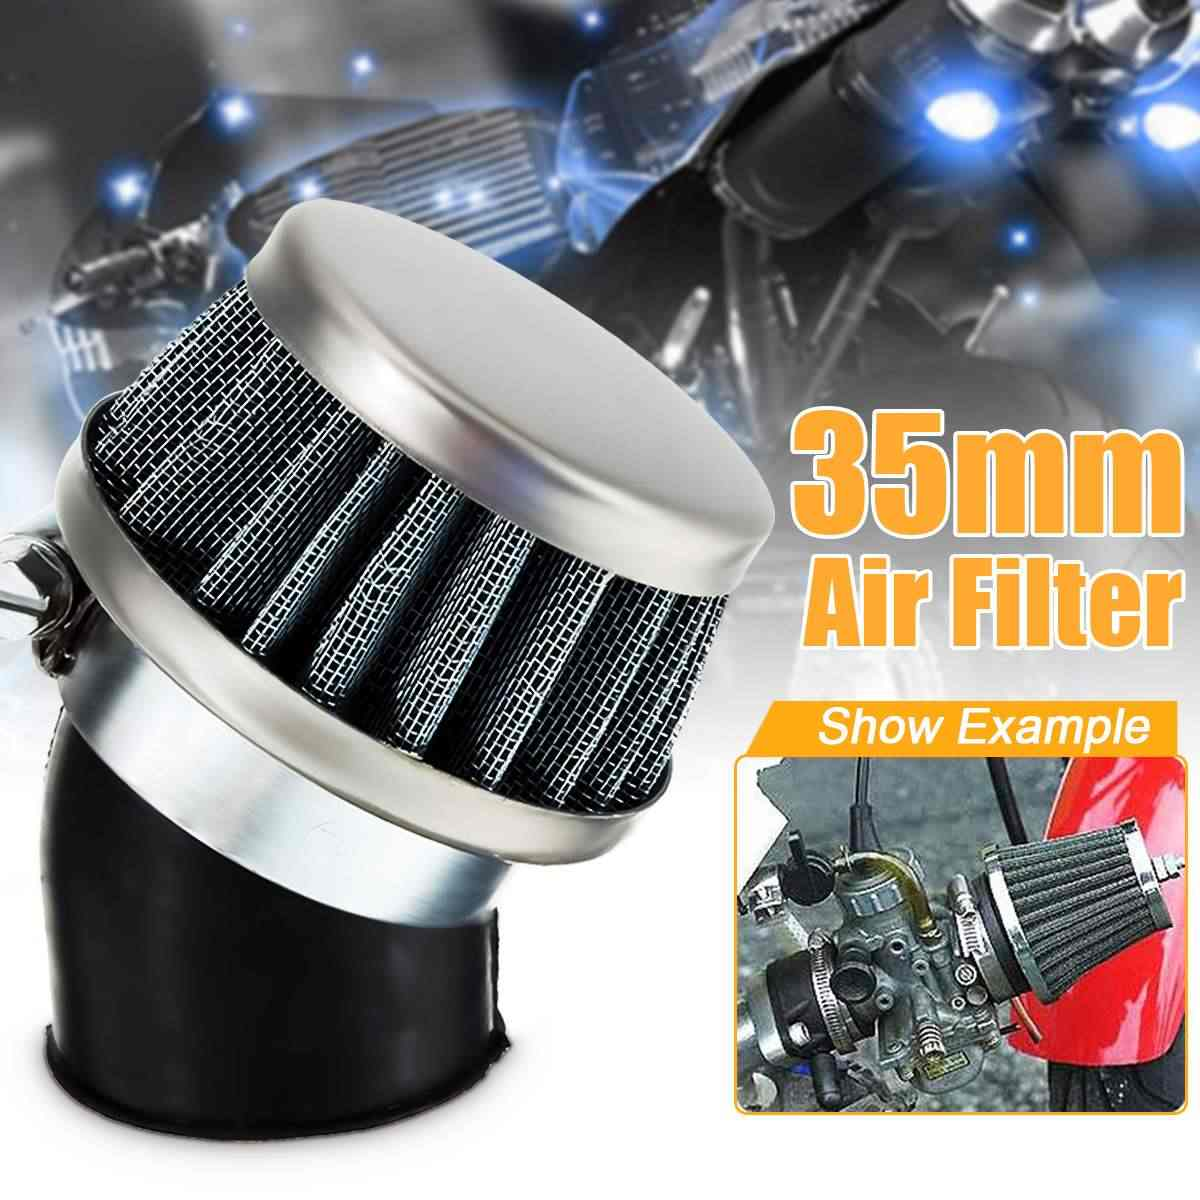 35mm Kasa Air Filter Bent Tabung 50-110CC Sepeda Motor Scooter ATV Quad Dirt Pit Sepeda